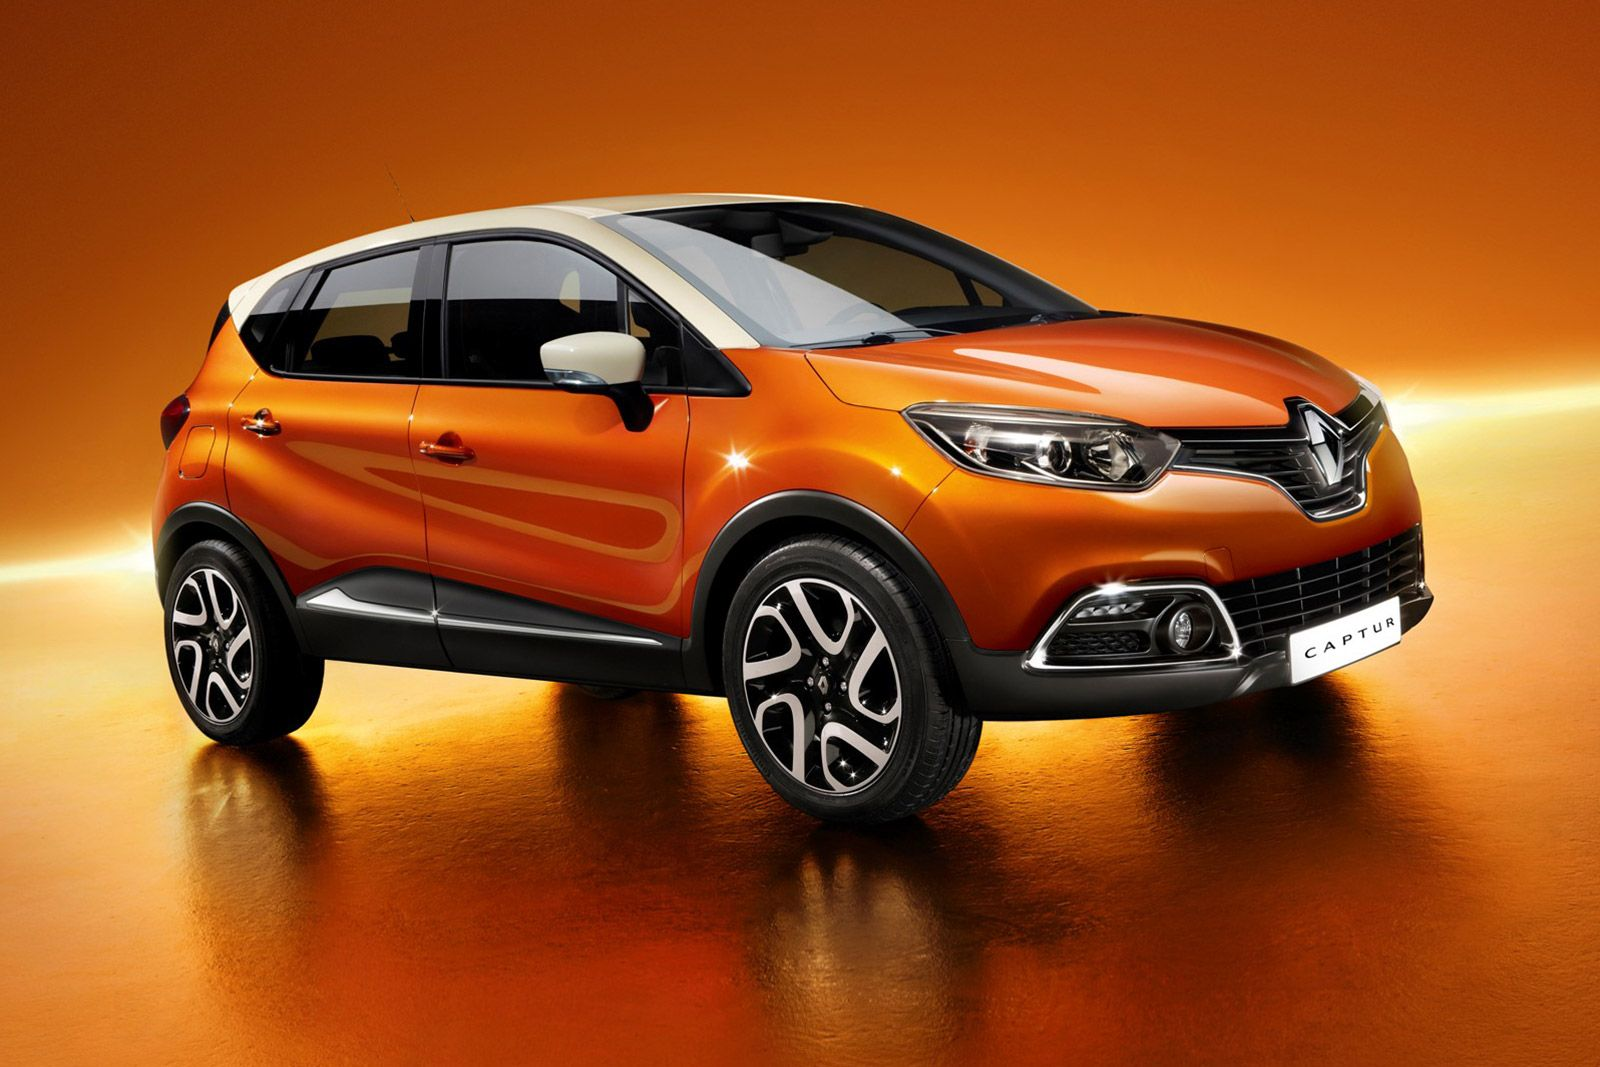 the new renault captur compact crossover car body design vehicles pinterest compact. Black Bedroom Furniture Sets. Home Design Ideas